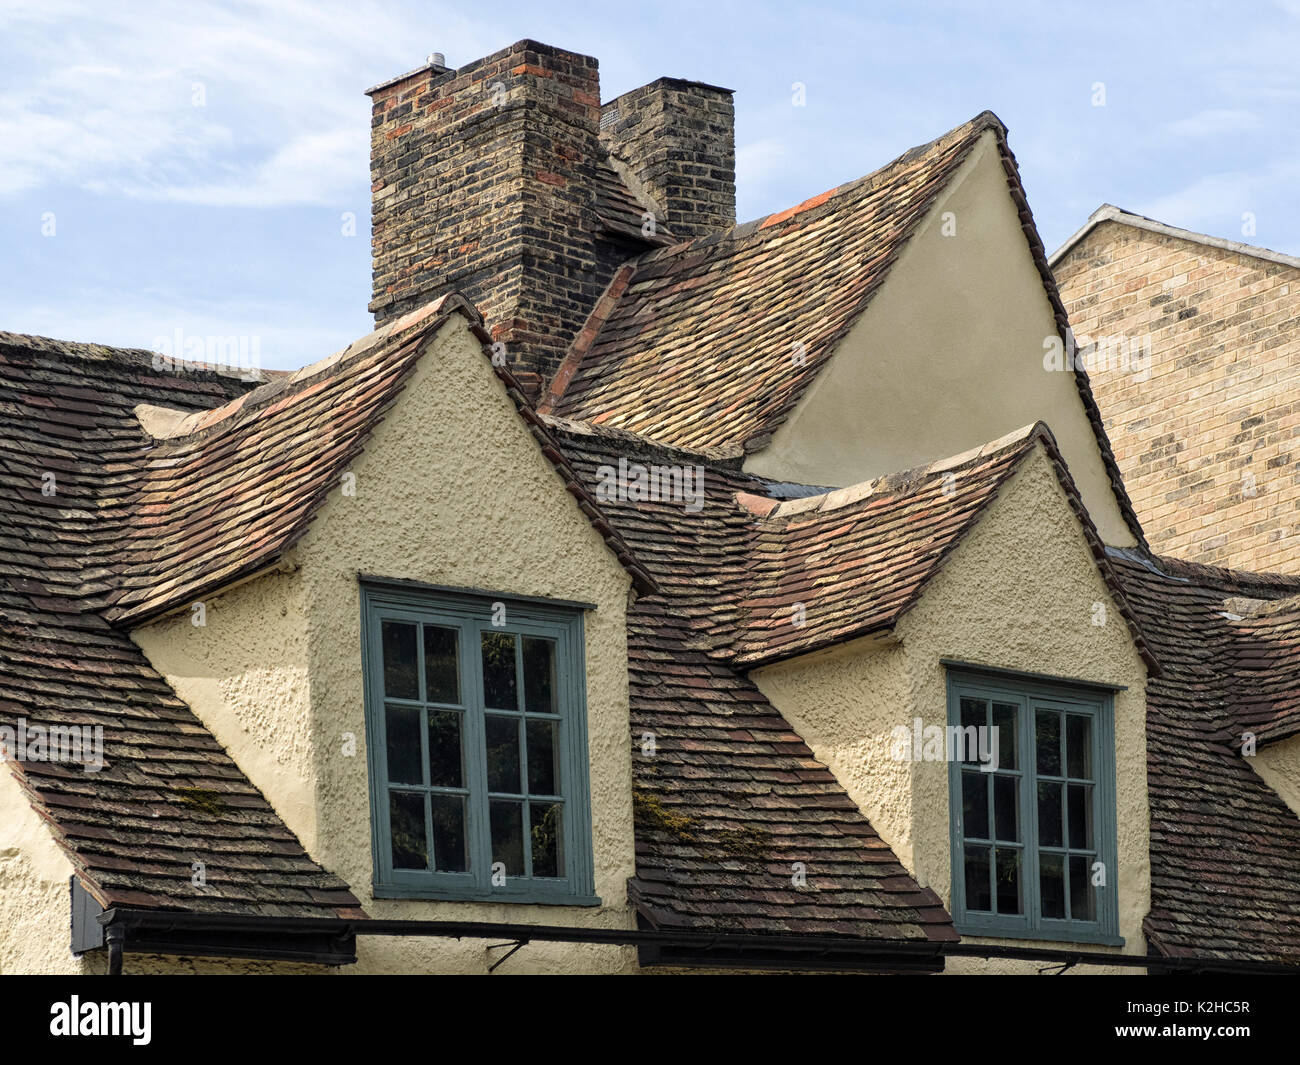 CAMBRIDGE, UK: The Old Gabled Roof Of The Museum Of Cambridge   Stock Image